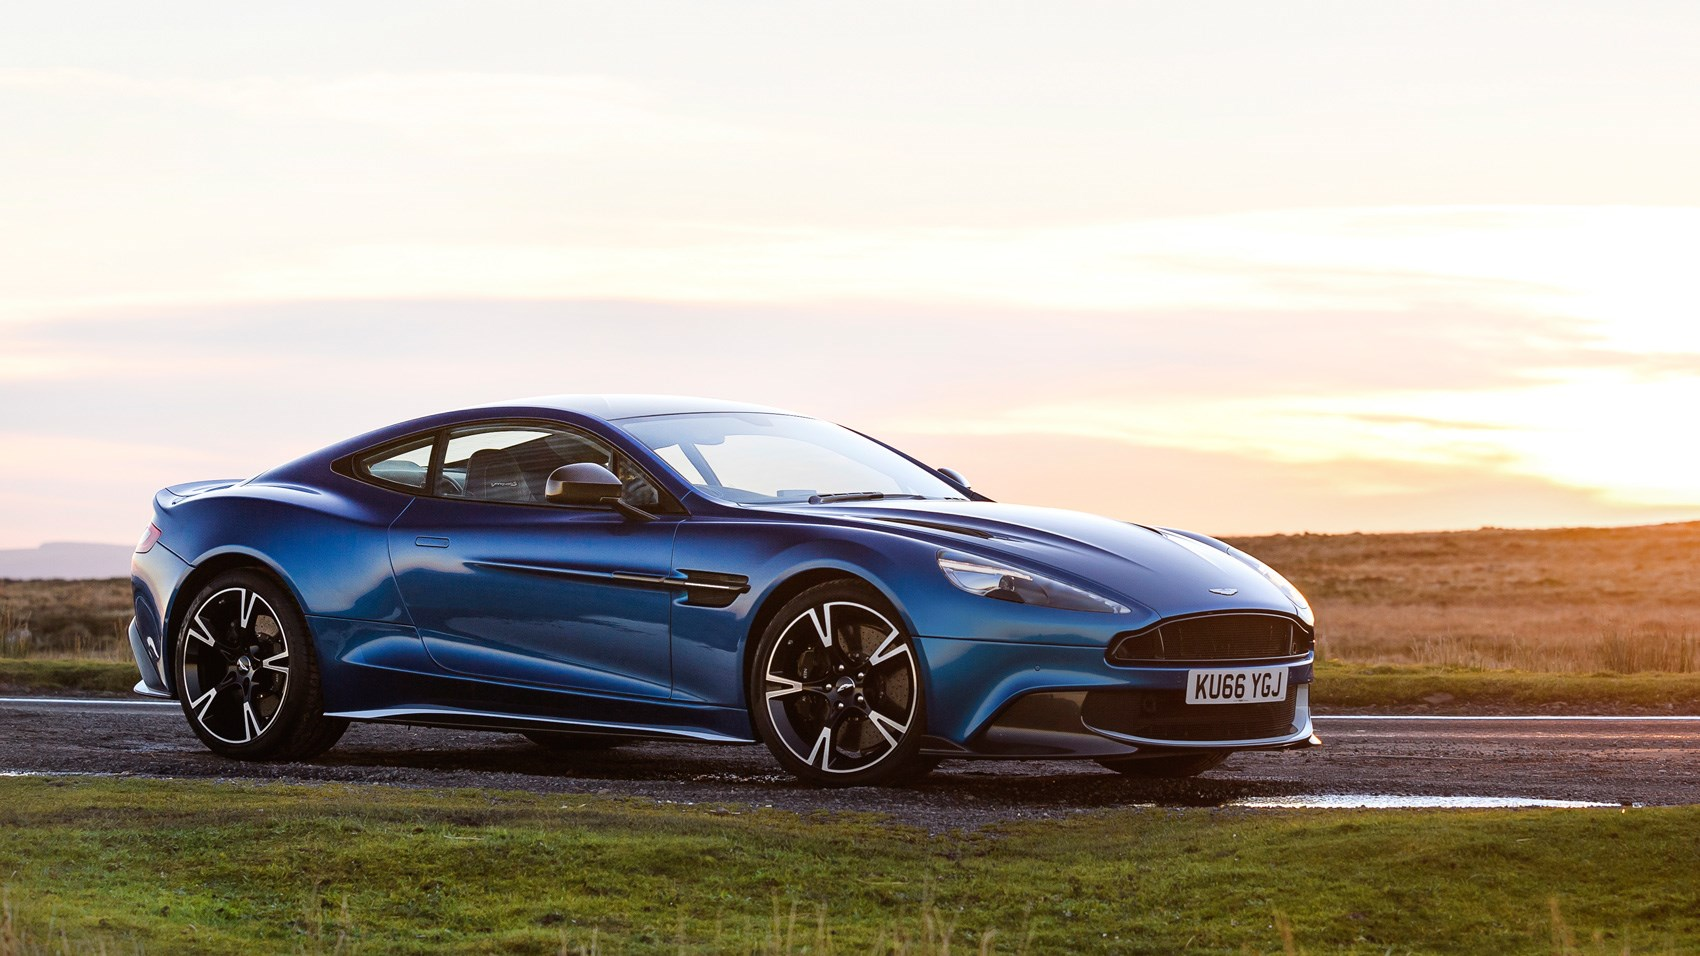 aston martin vanquish s 2017 review car magazine. Black Bedroom Furniture Sets. Home Design Ideas